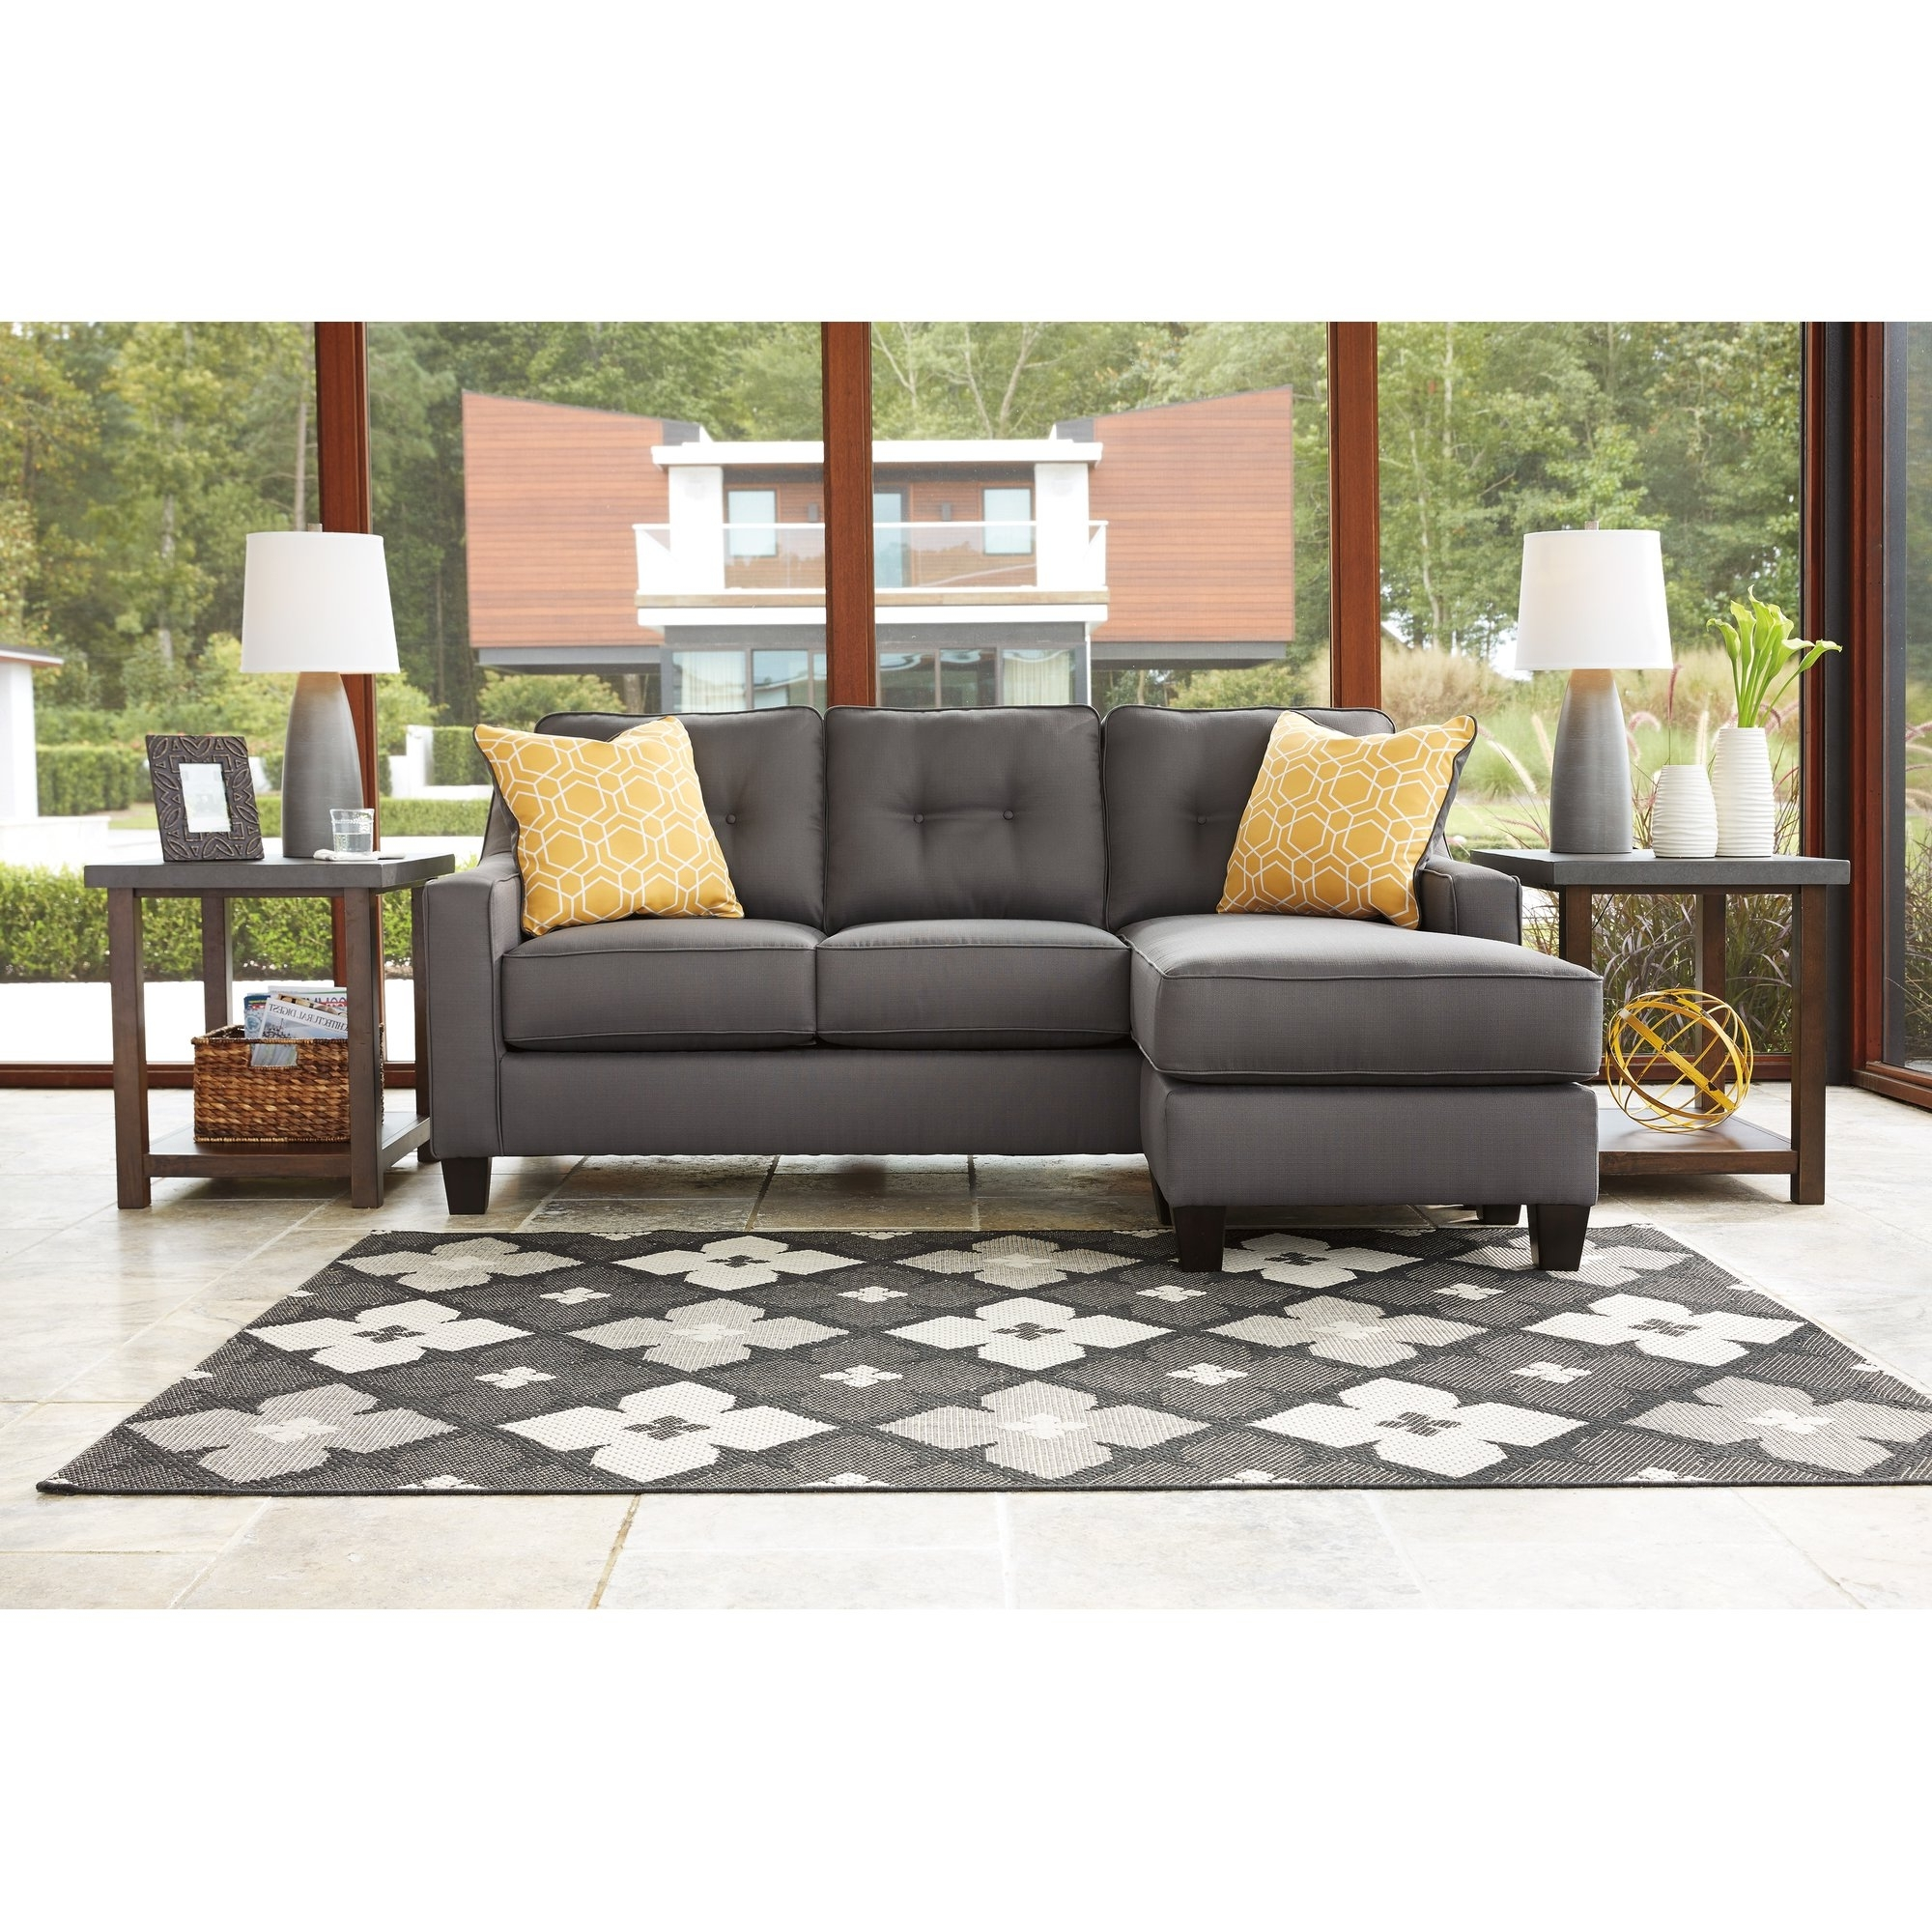 Trendy Reversible Chaise Sectional Sofas Intended For Furniture: Sofa With Movable Chaise (View 11 of 15)